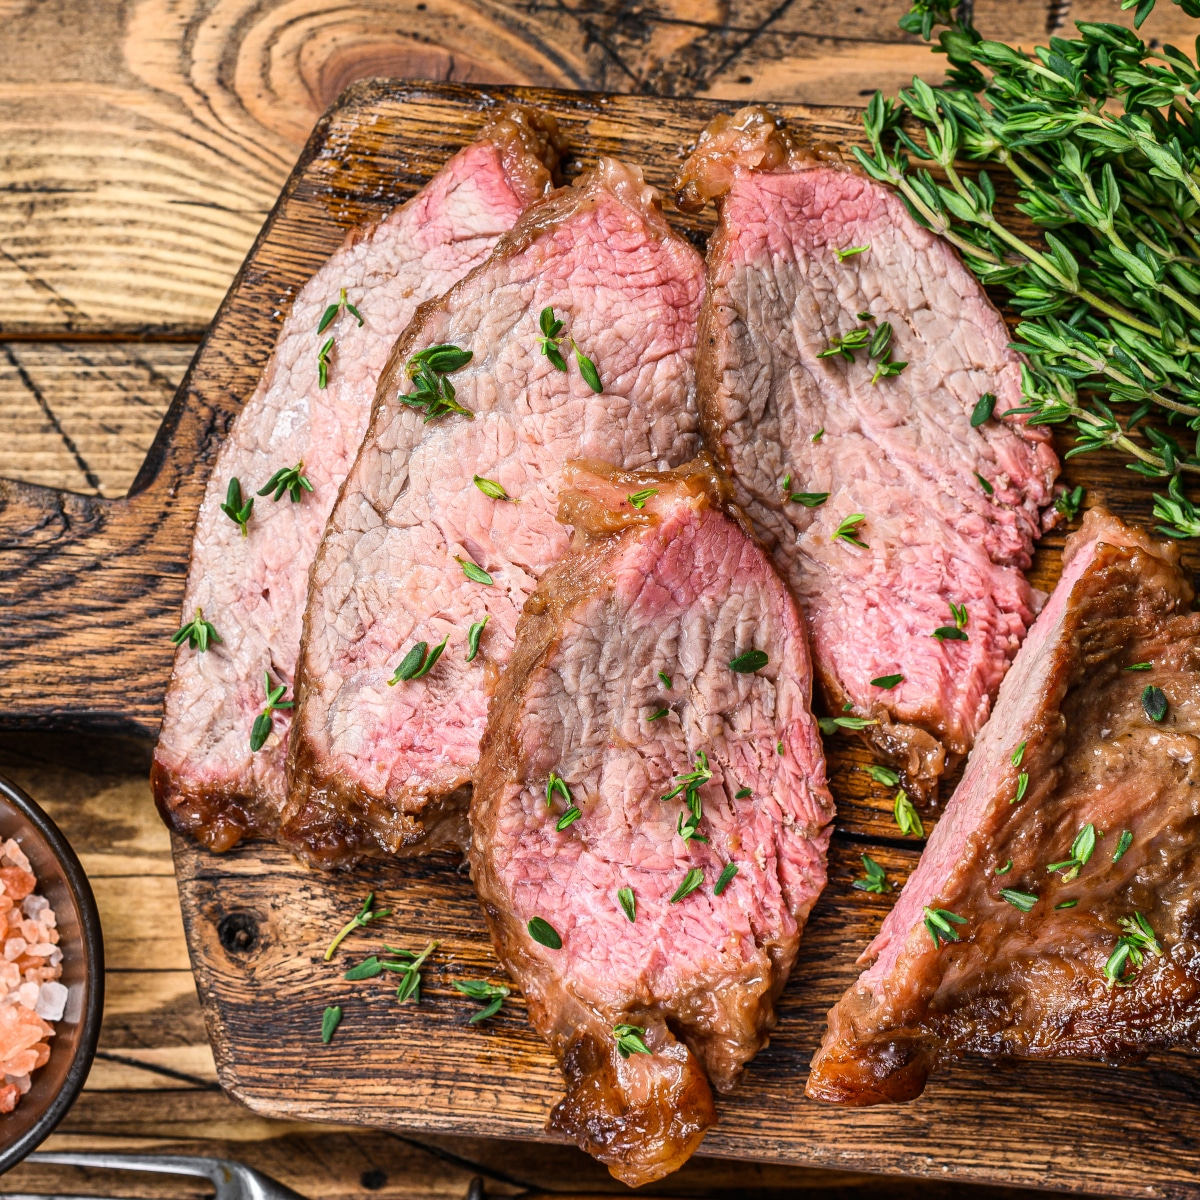 slices of tri tip on a board with herbs